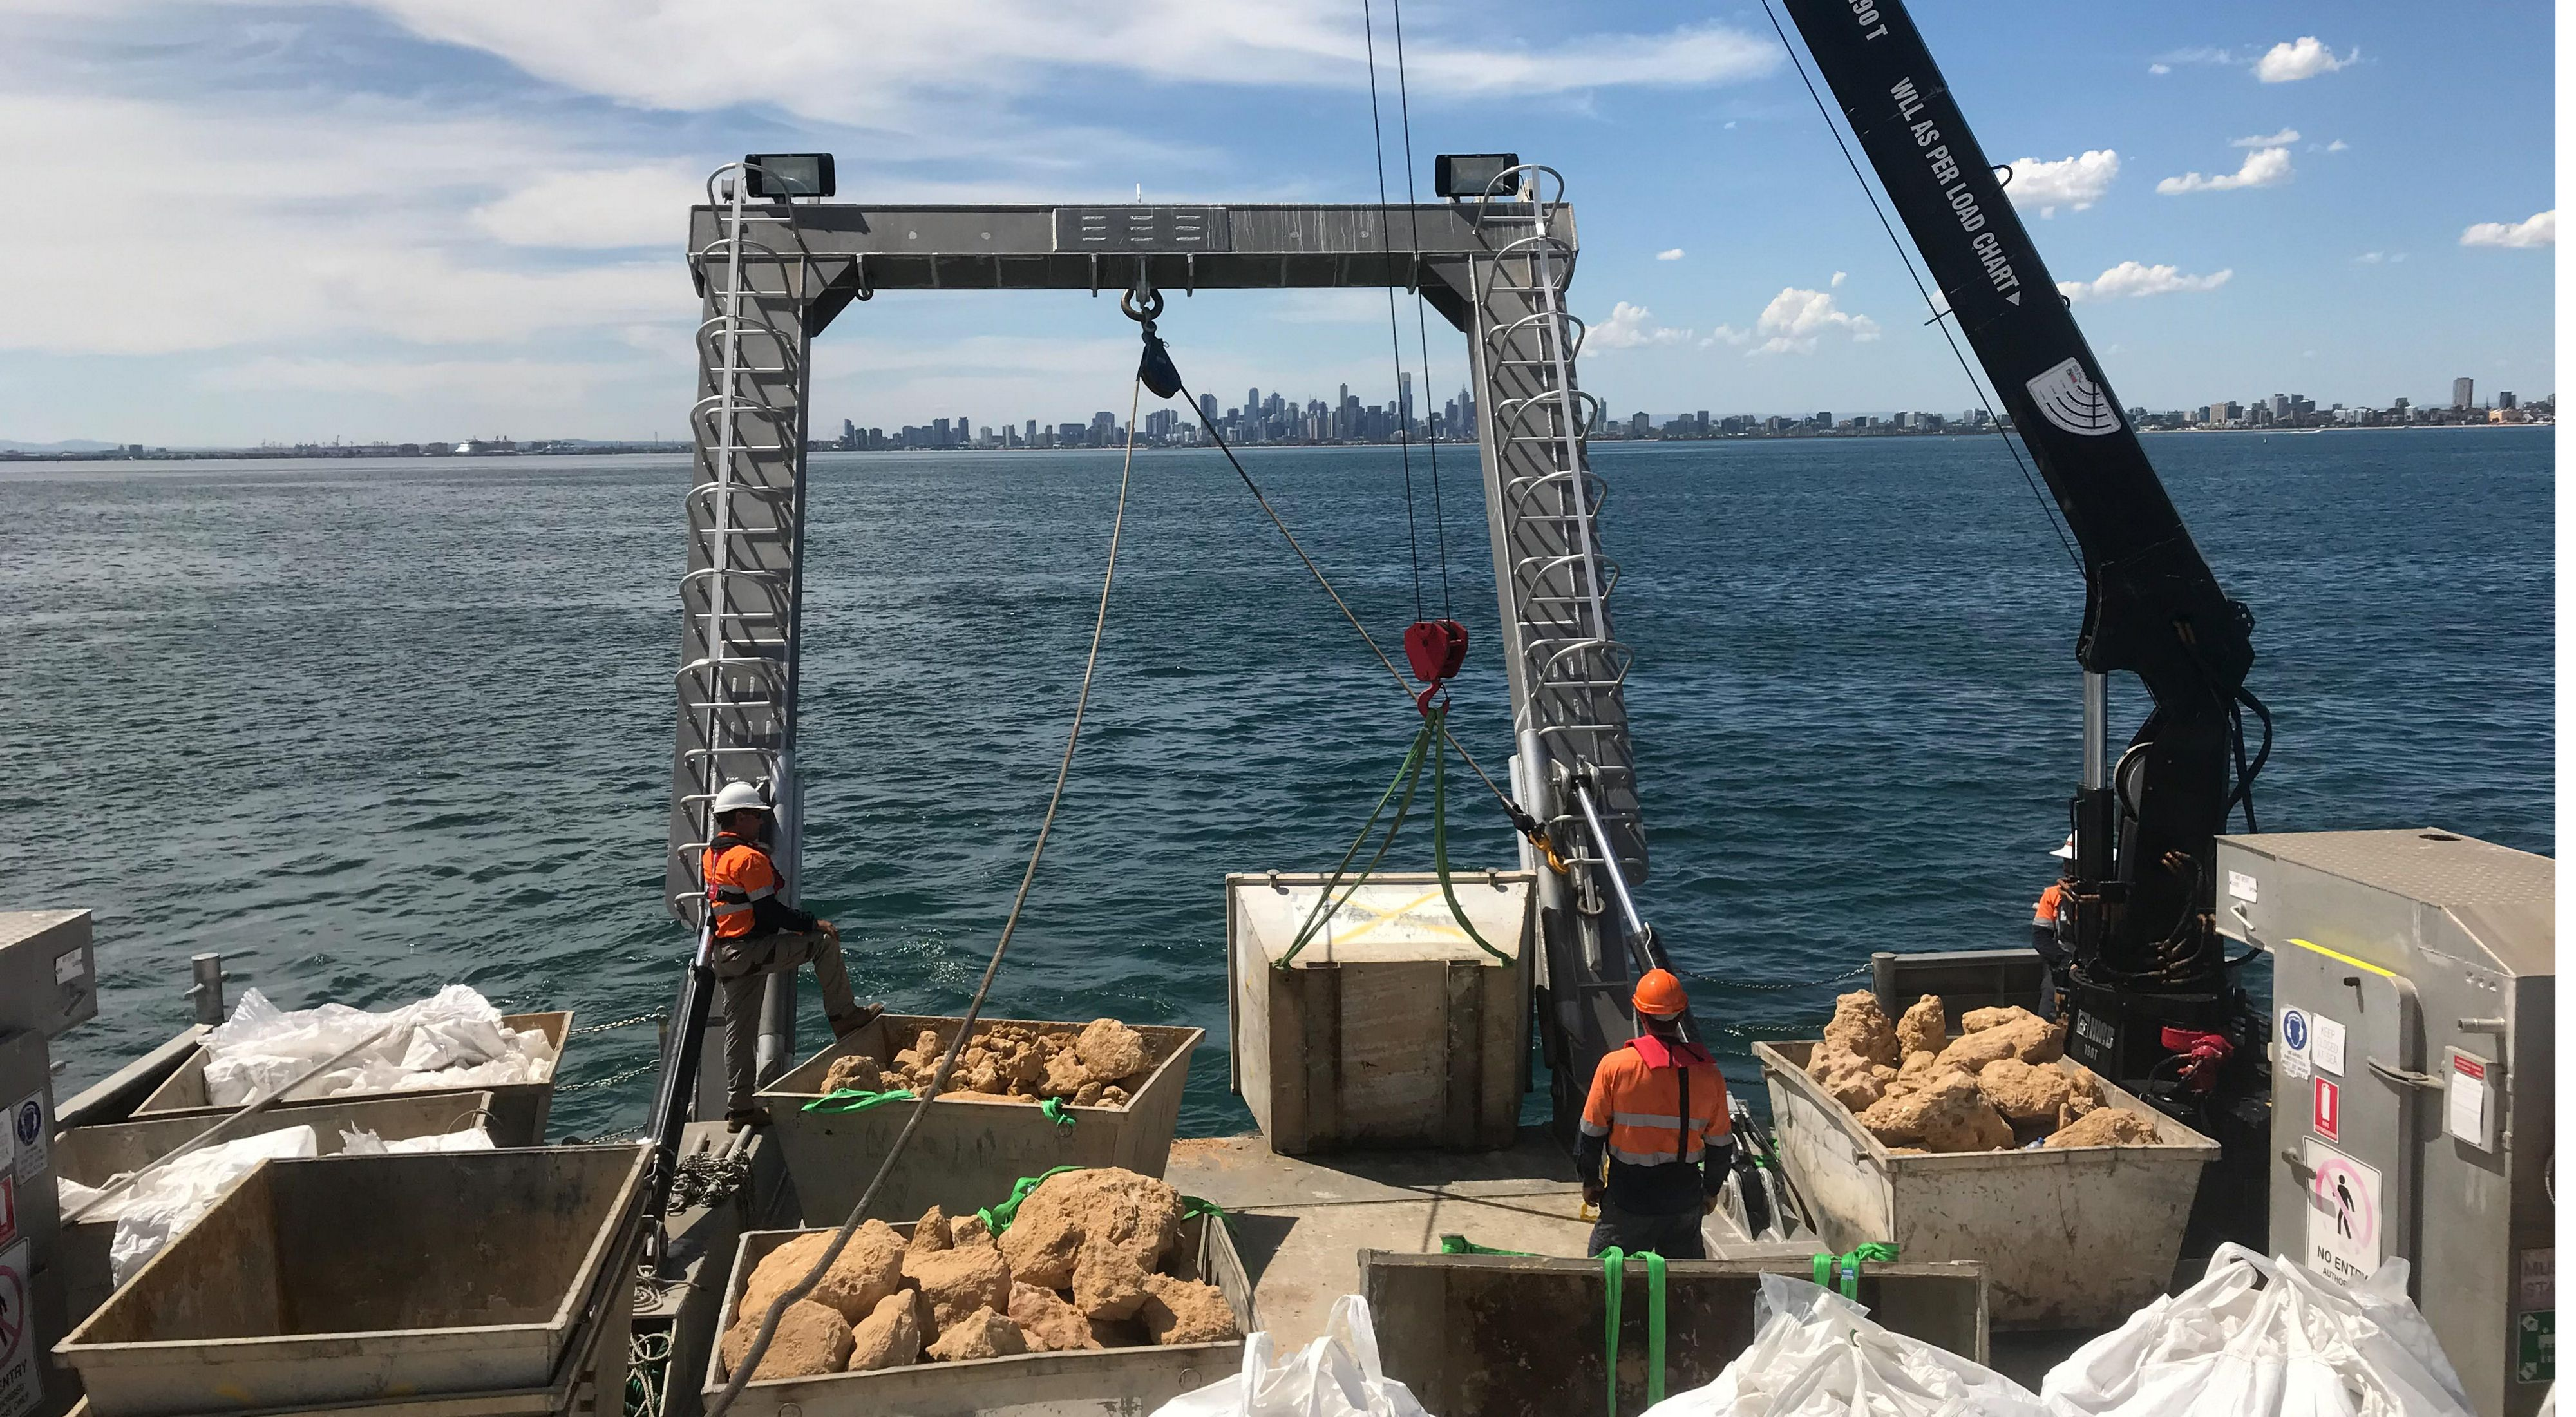 Building new shellfish reefs in Australia.